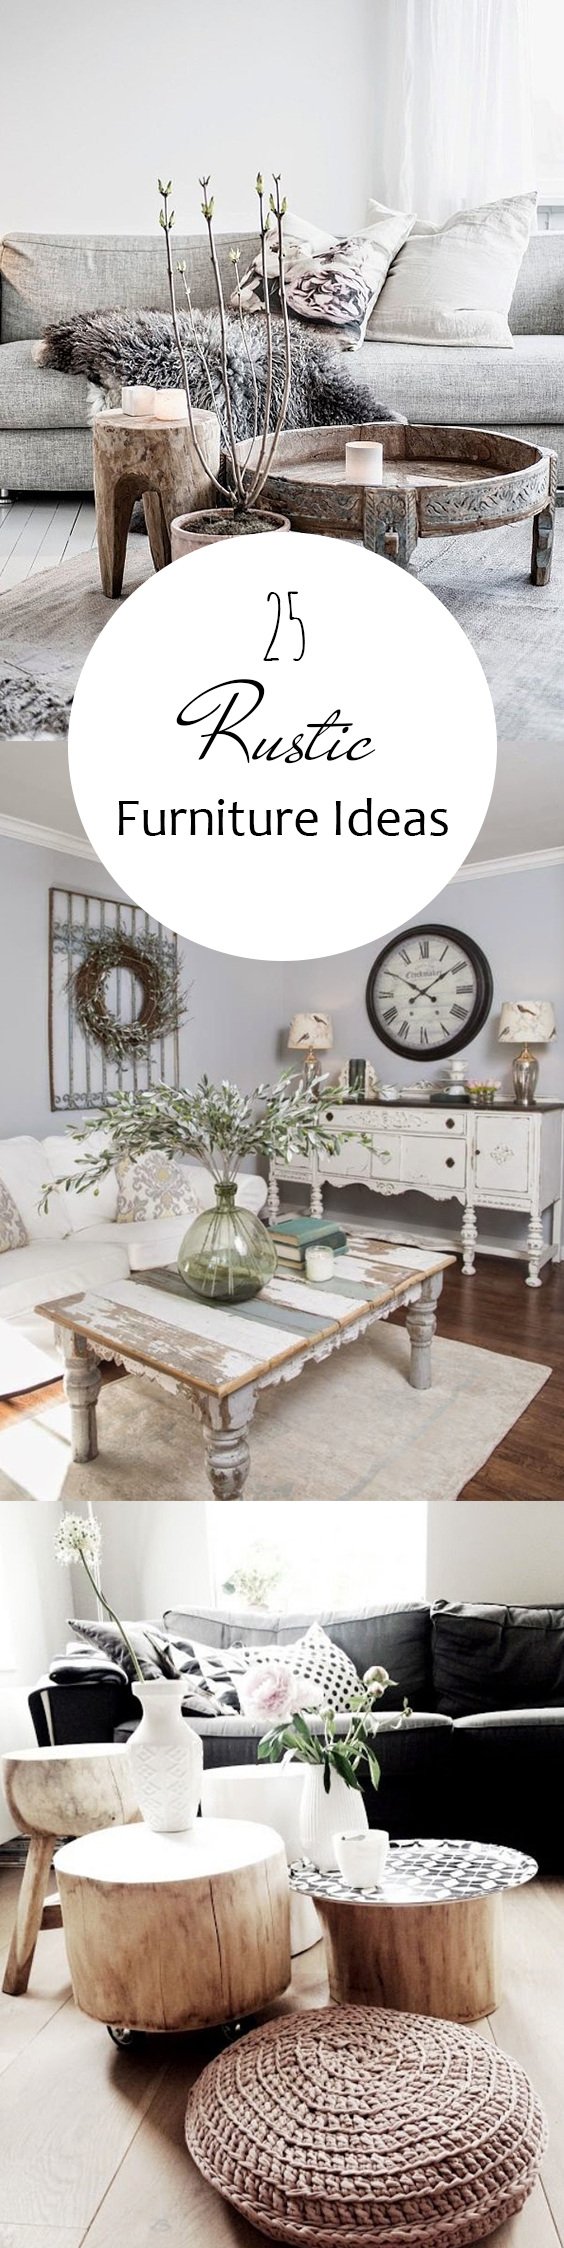 25 Rustic Furniture Ideas Page 10